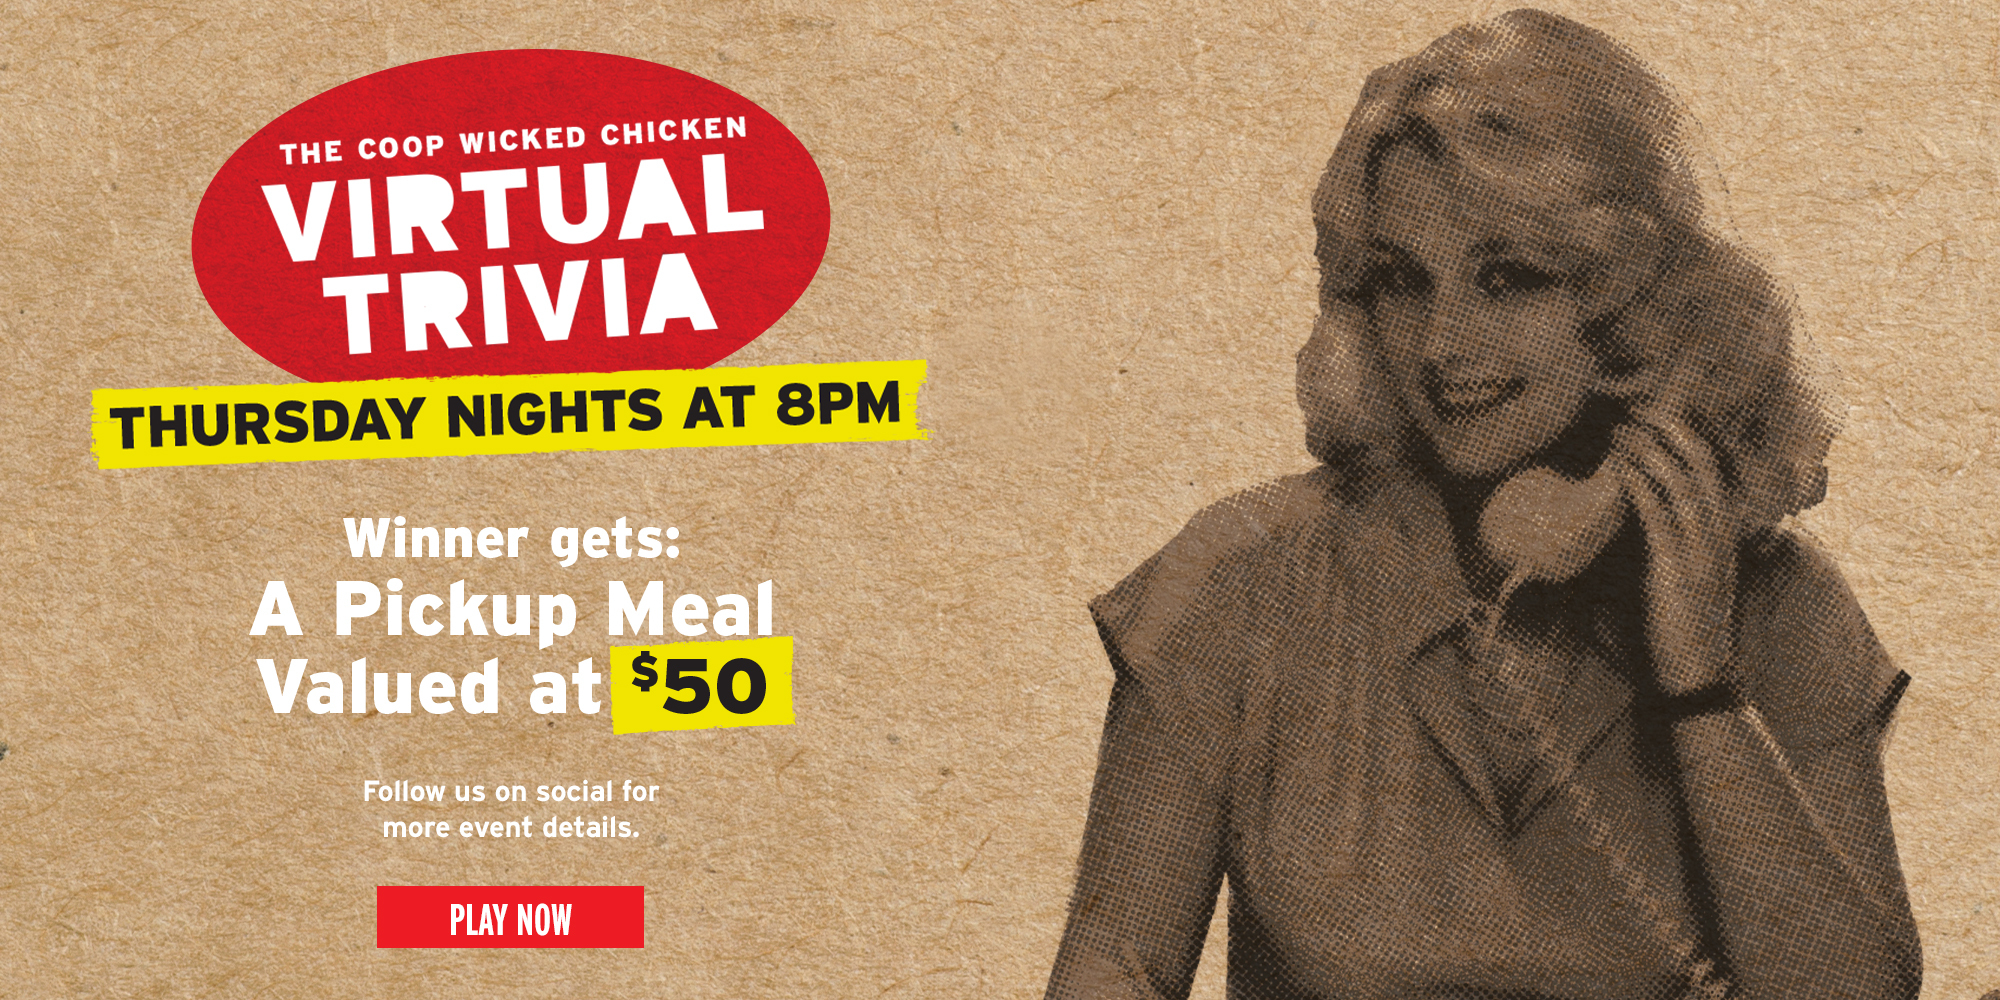 The Coop Wicked Chicken, Virtual Trivia. Thursday nights at 8pm. Winner gets a pickup meal valued at $50. Play now.